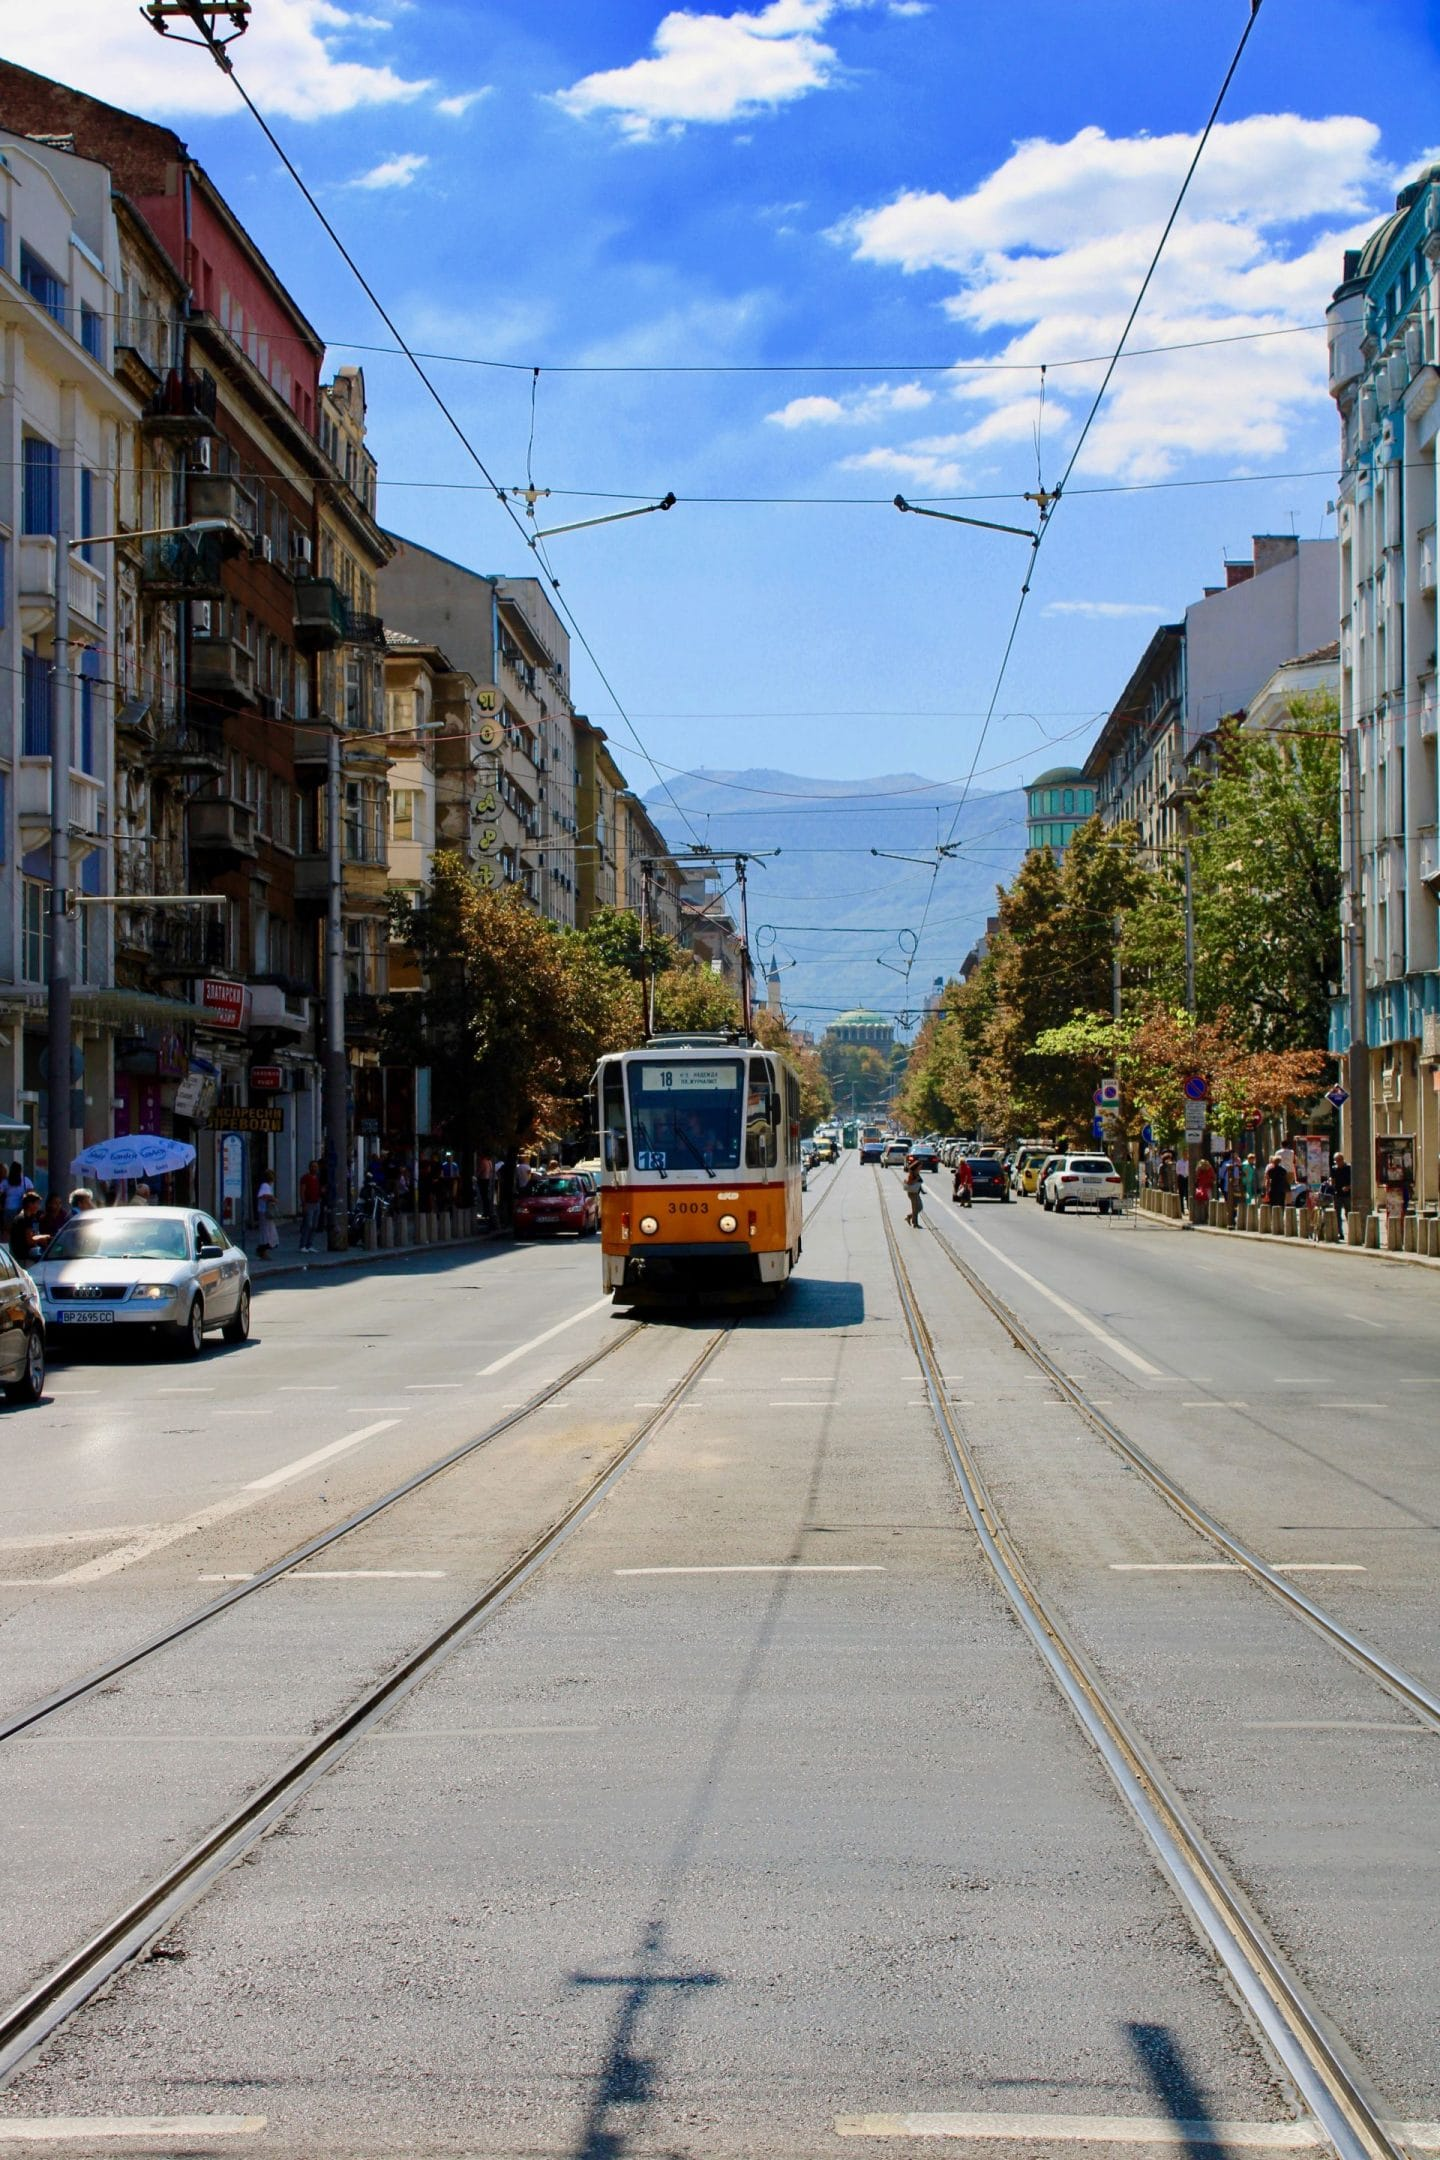 Istanbul to Sofia night train: an image of a yellow tram trundling along a street in Sofia with blue sky in the background